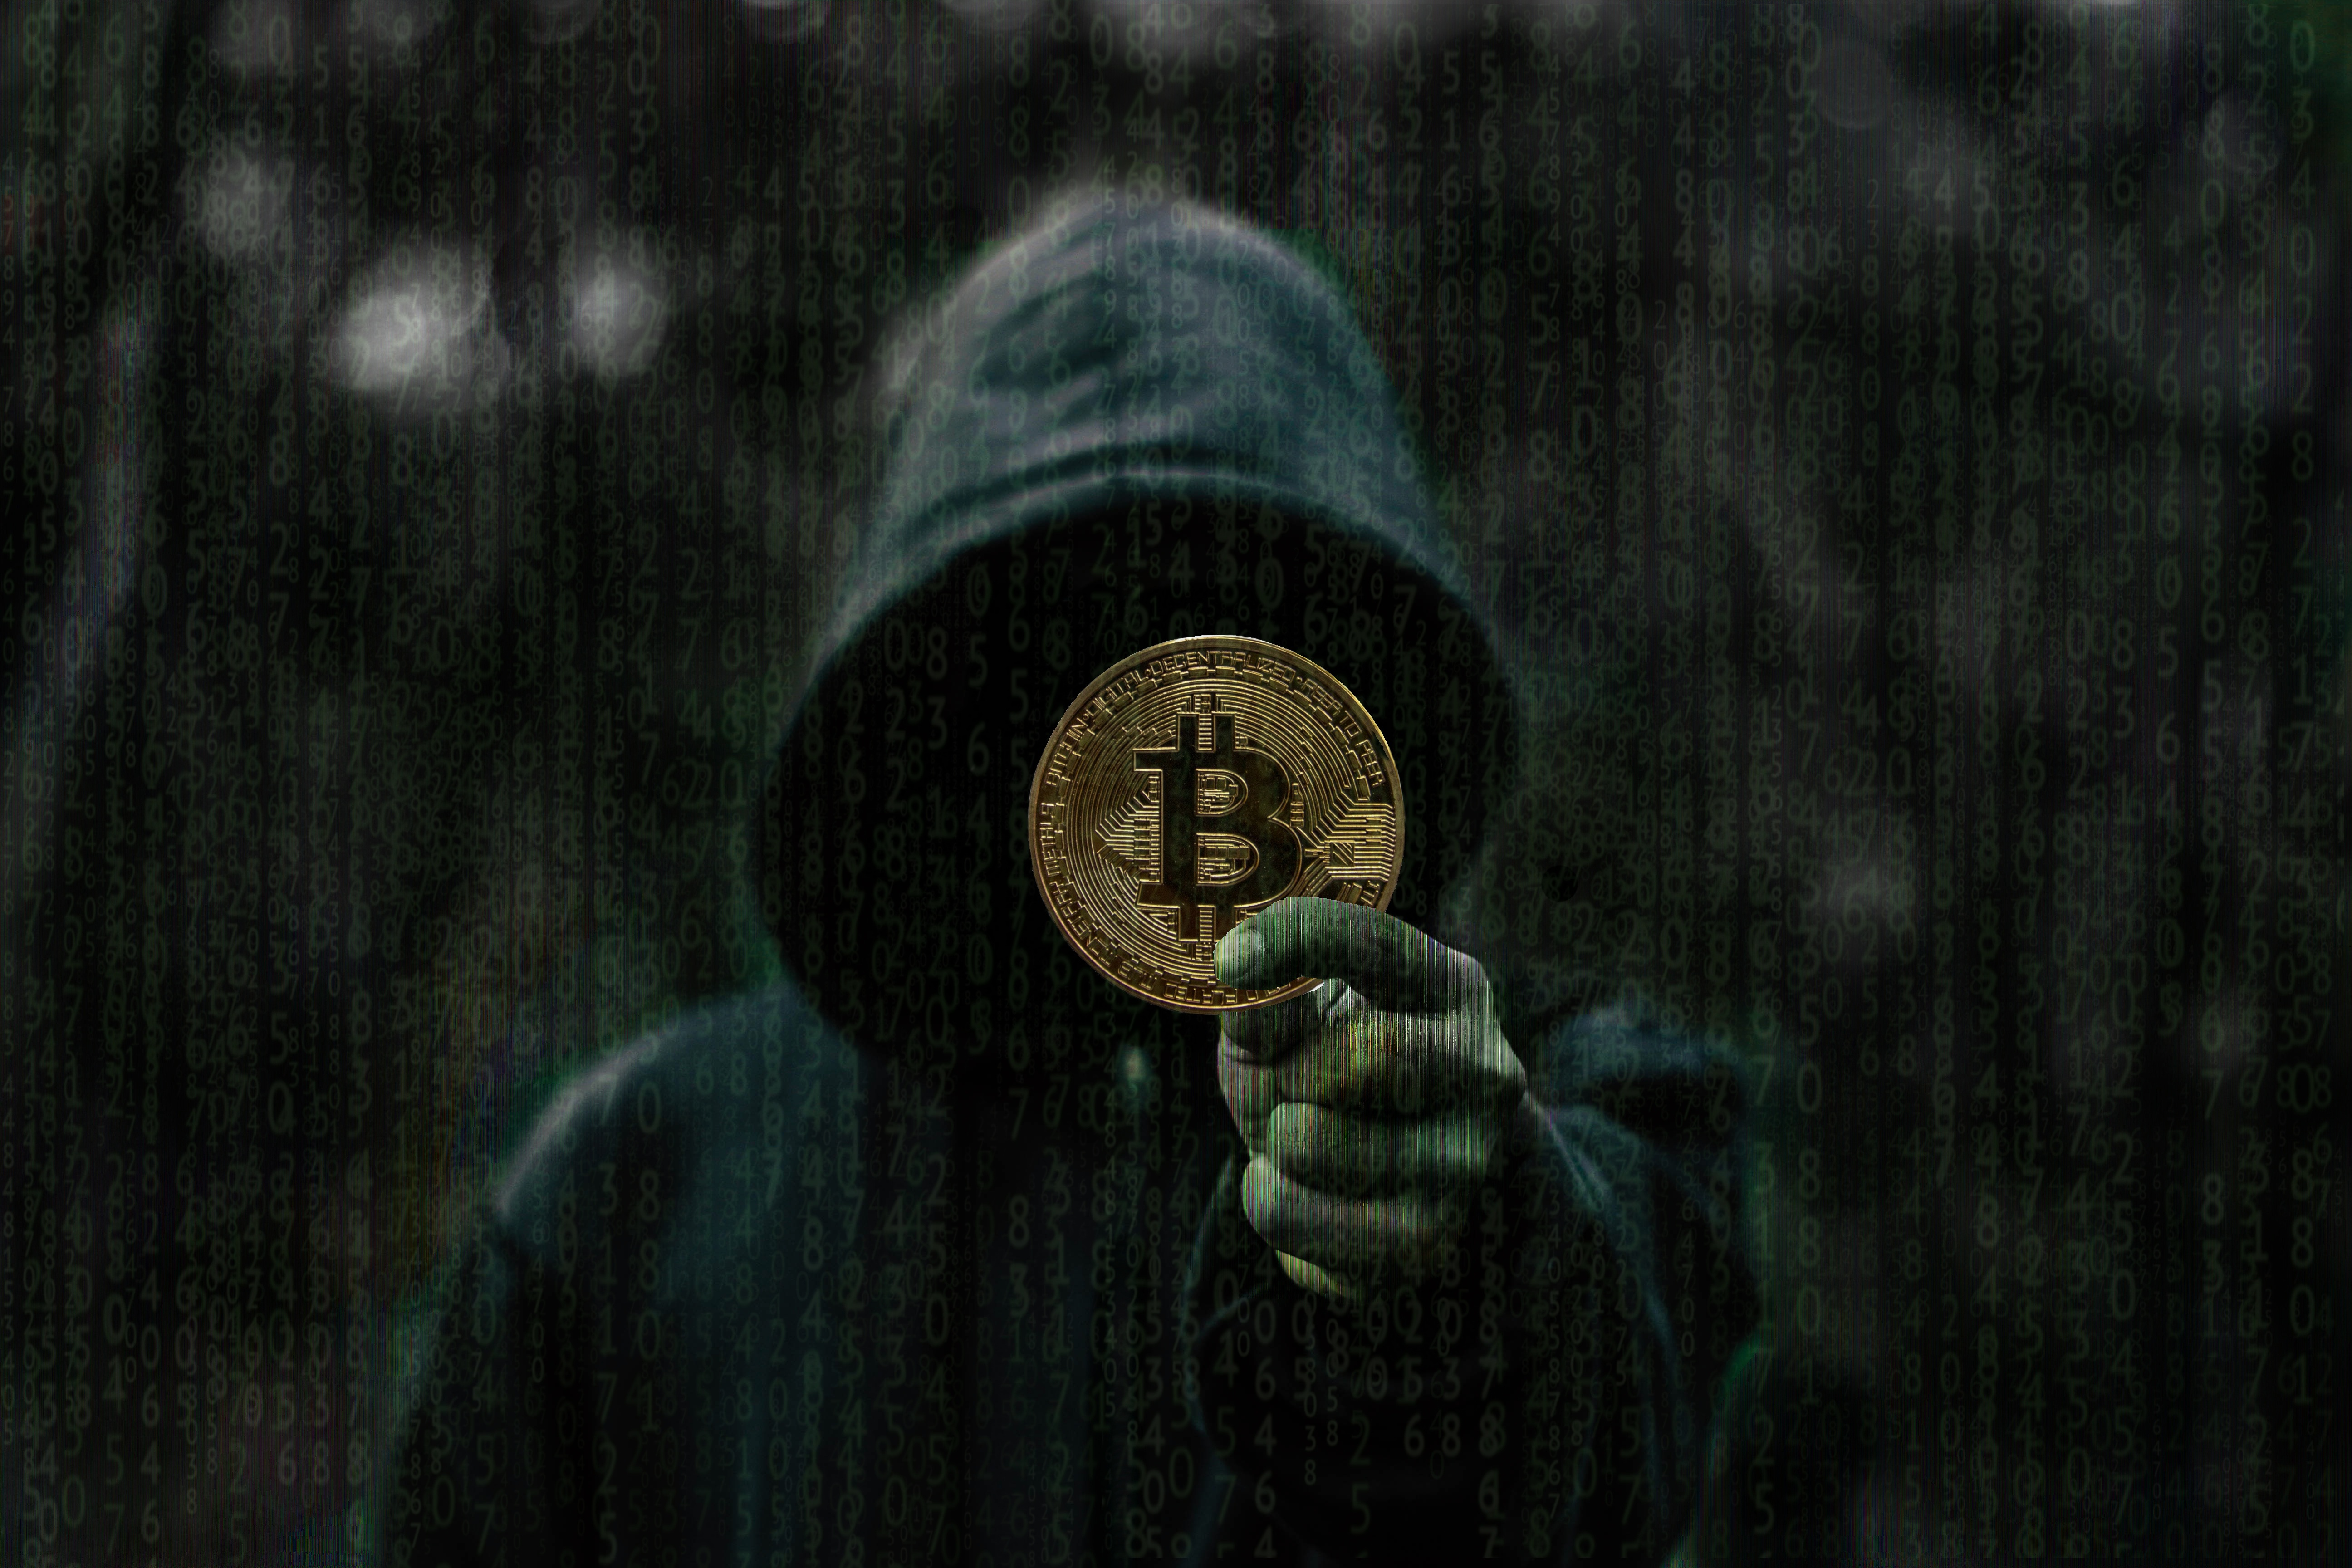 Crypto Wallpaper 3d Bitcoin Cryptocurrency 5k Hd Others 4k Wallpapers